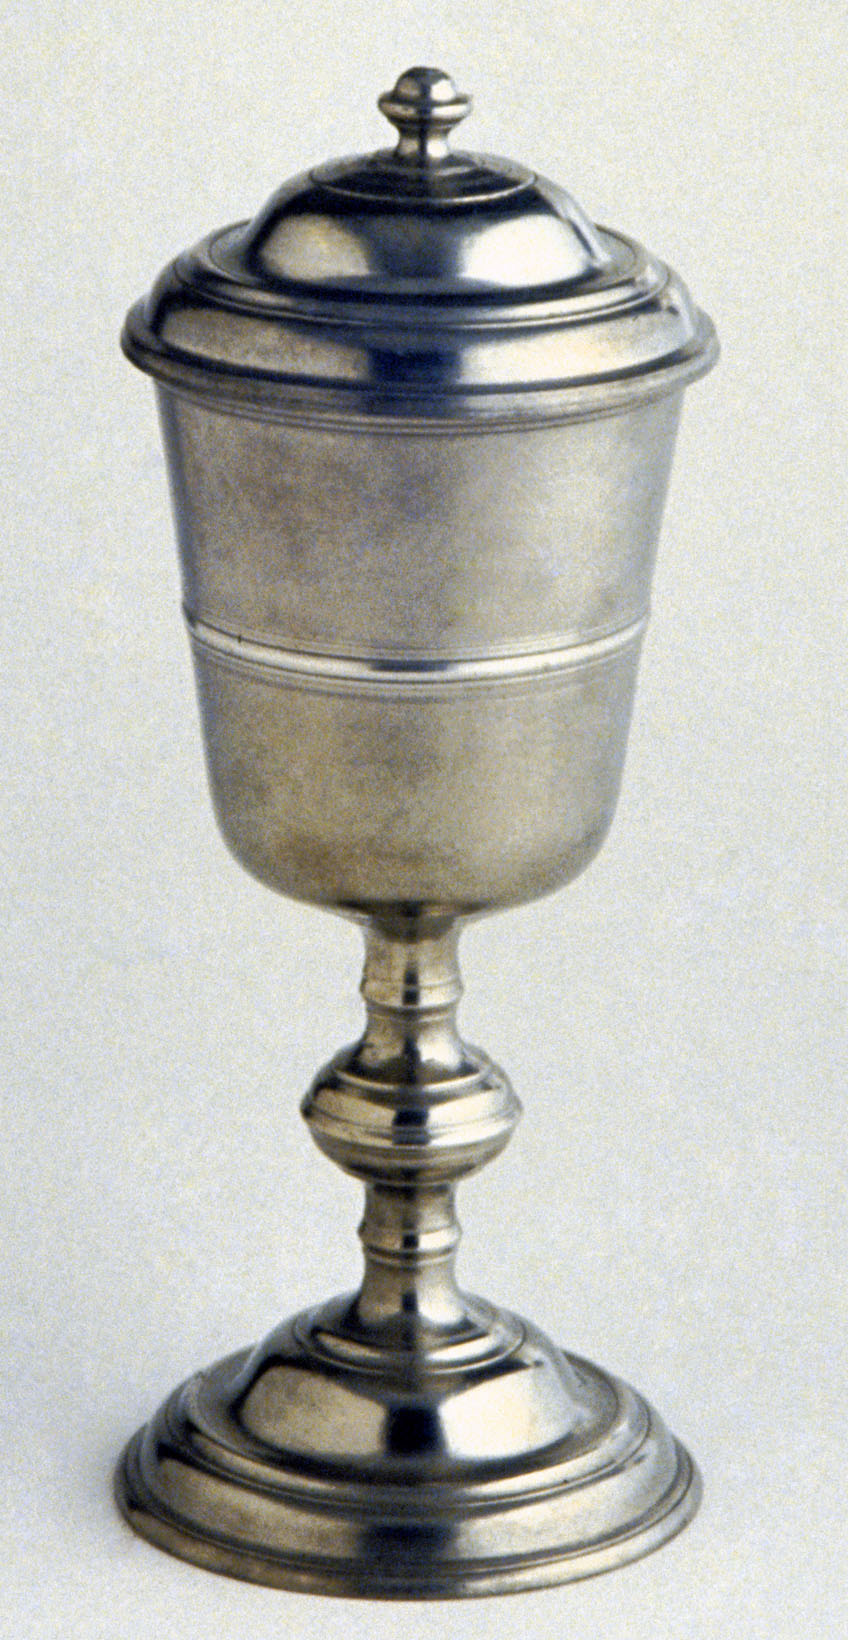 1953.0097 Chalice, Chalice with lid